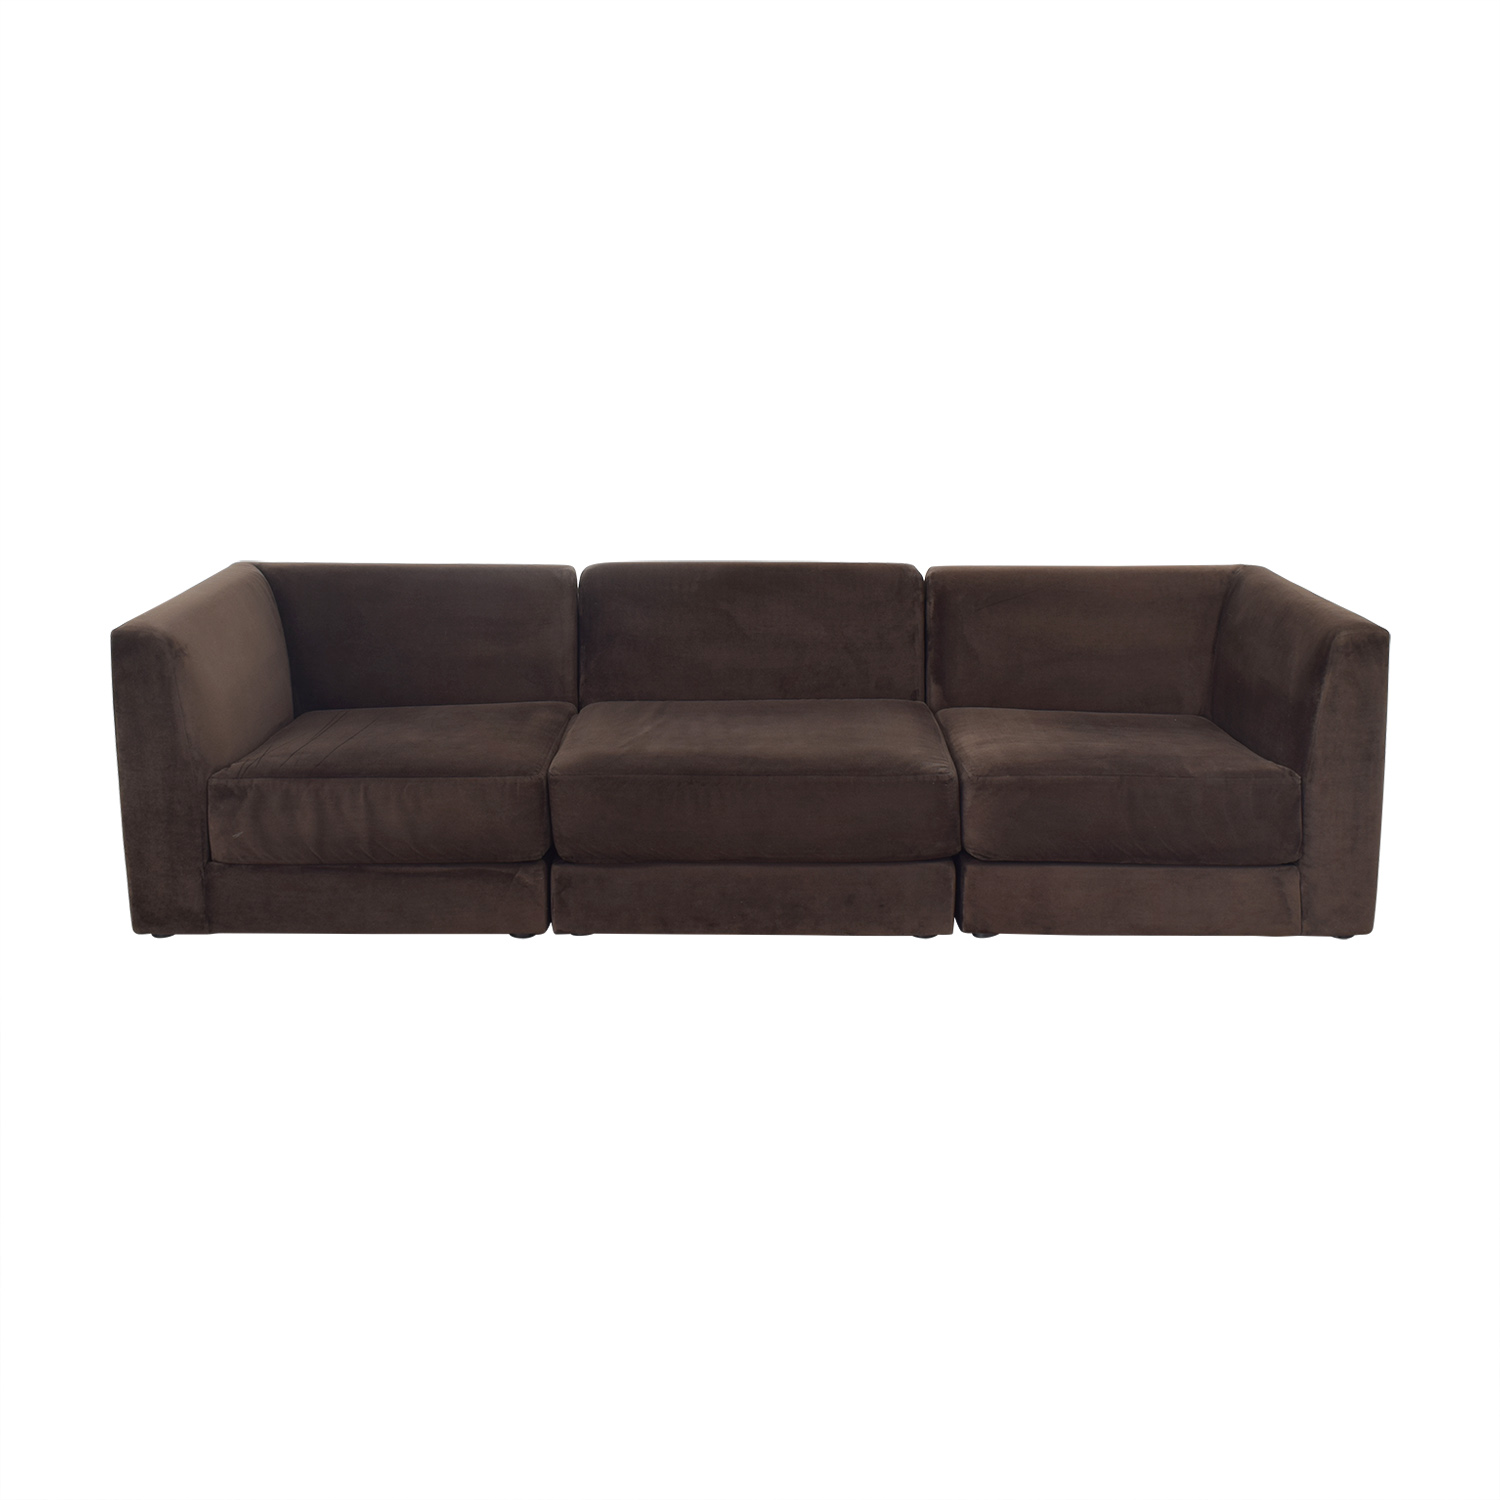 CB2 CB2 Three Piece Modular Sofa used